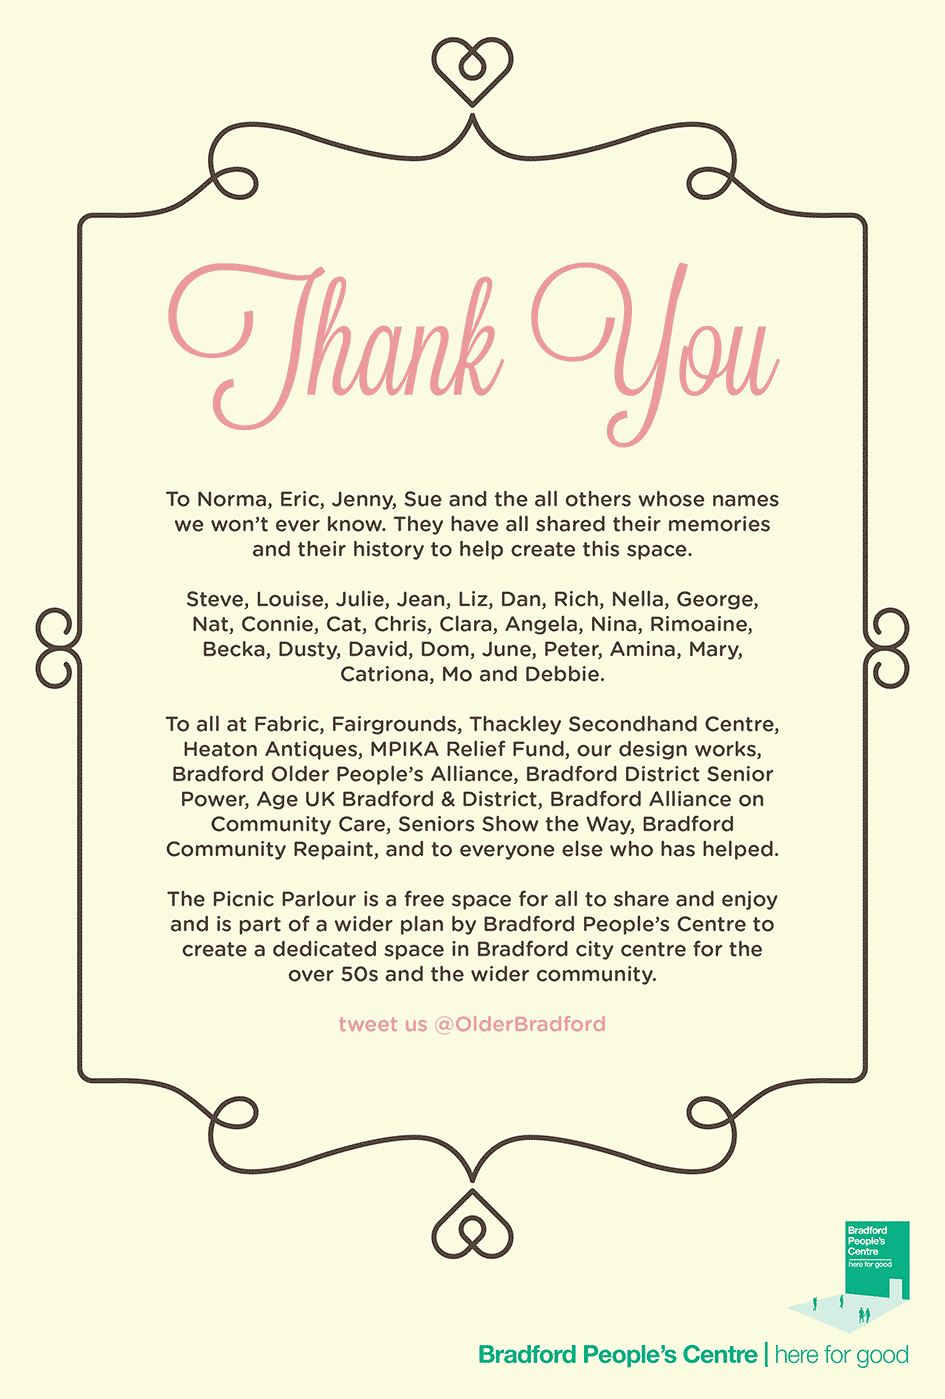 Thank You Poster Picnic Parlour